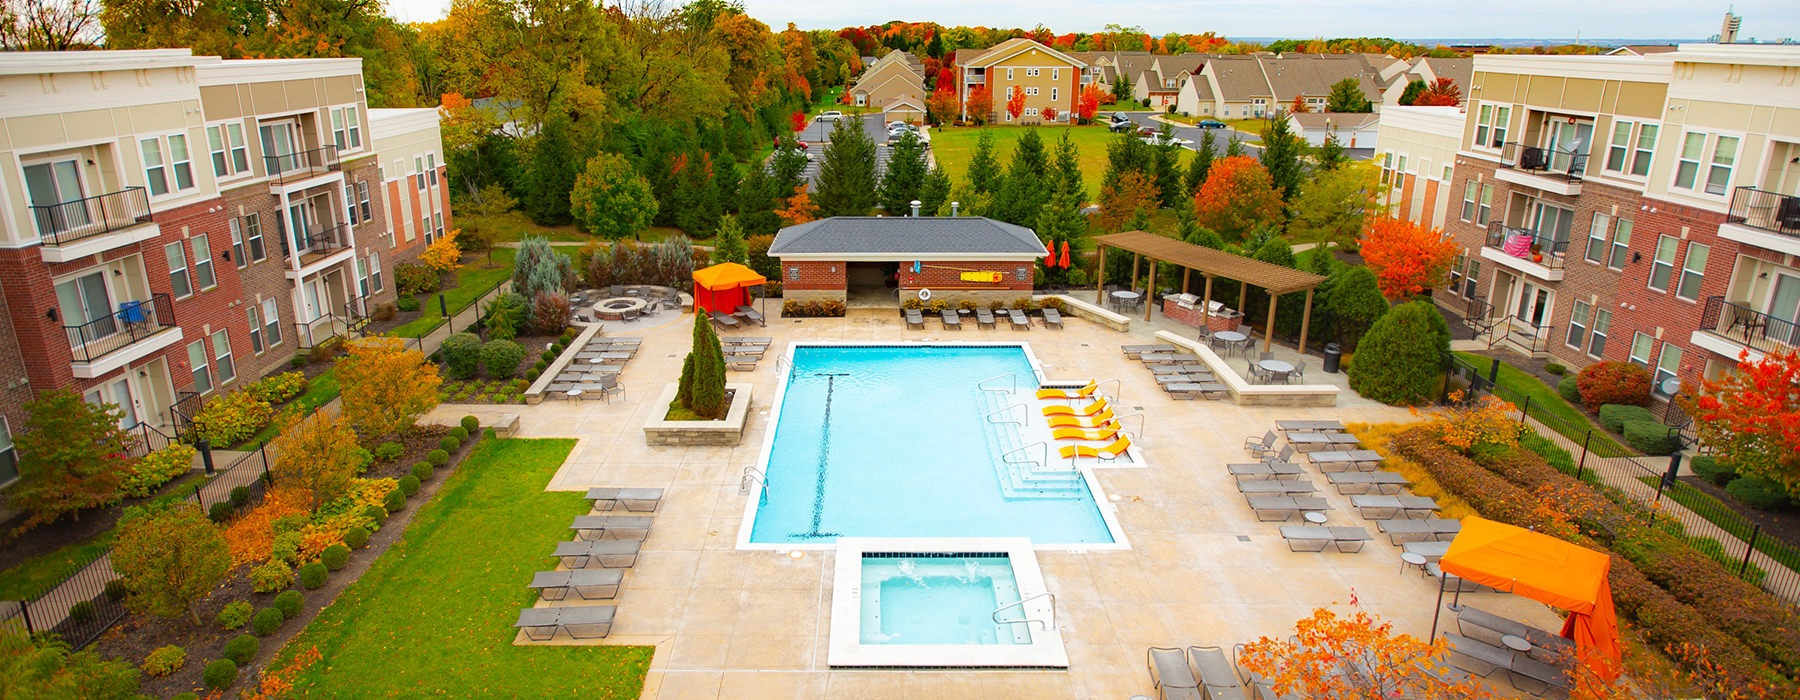 Clear view of the residential pool in between buildings at The lofts at Willow Creek